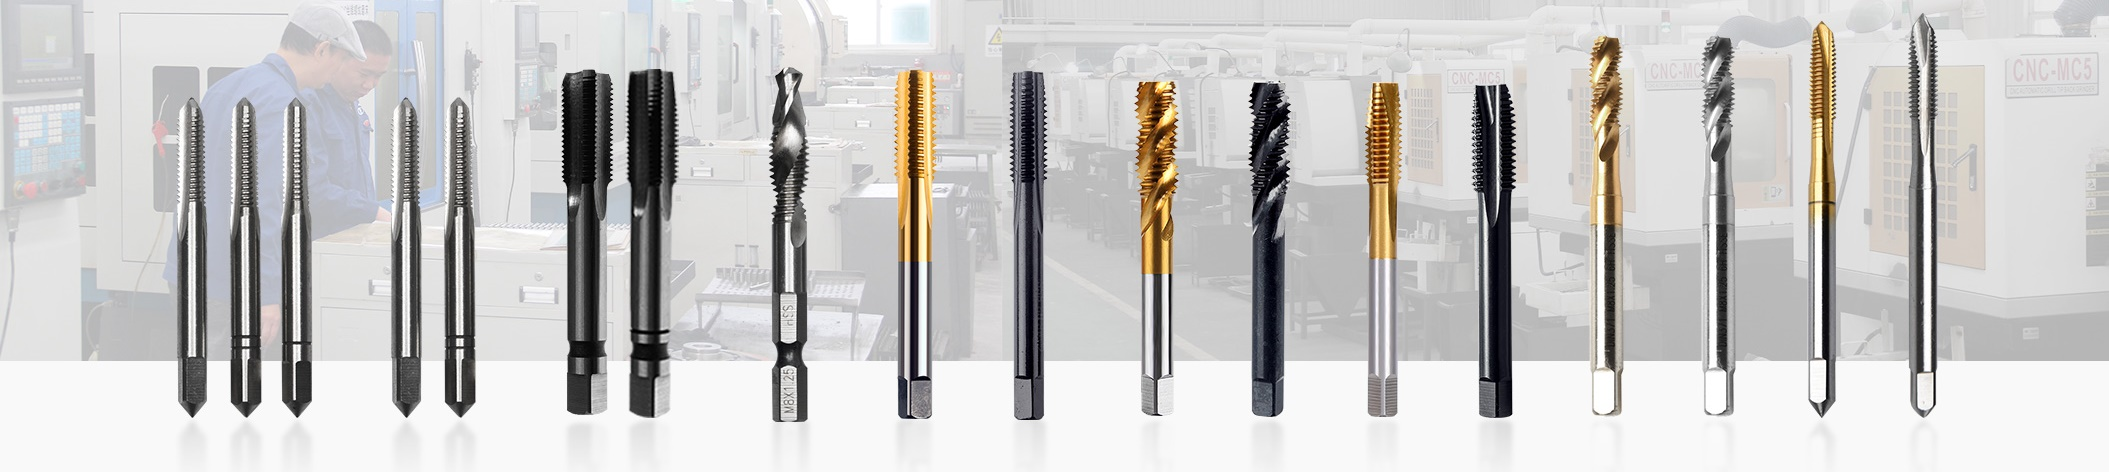 1605611019 The Chinese Professional Tap Manufacturer - Thread Tap Manufacturer